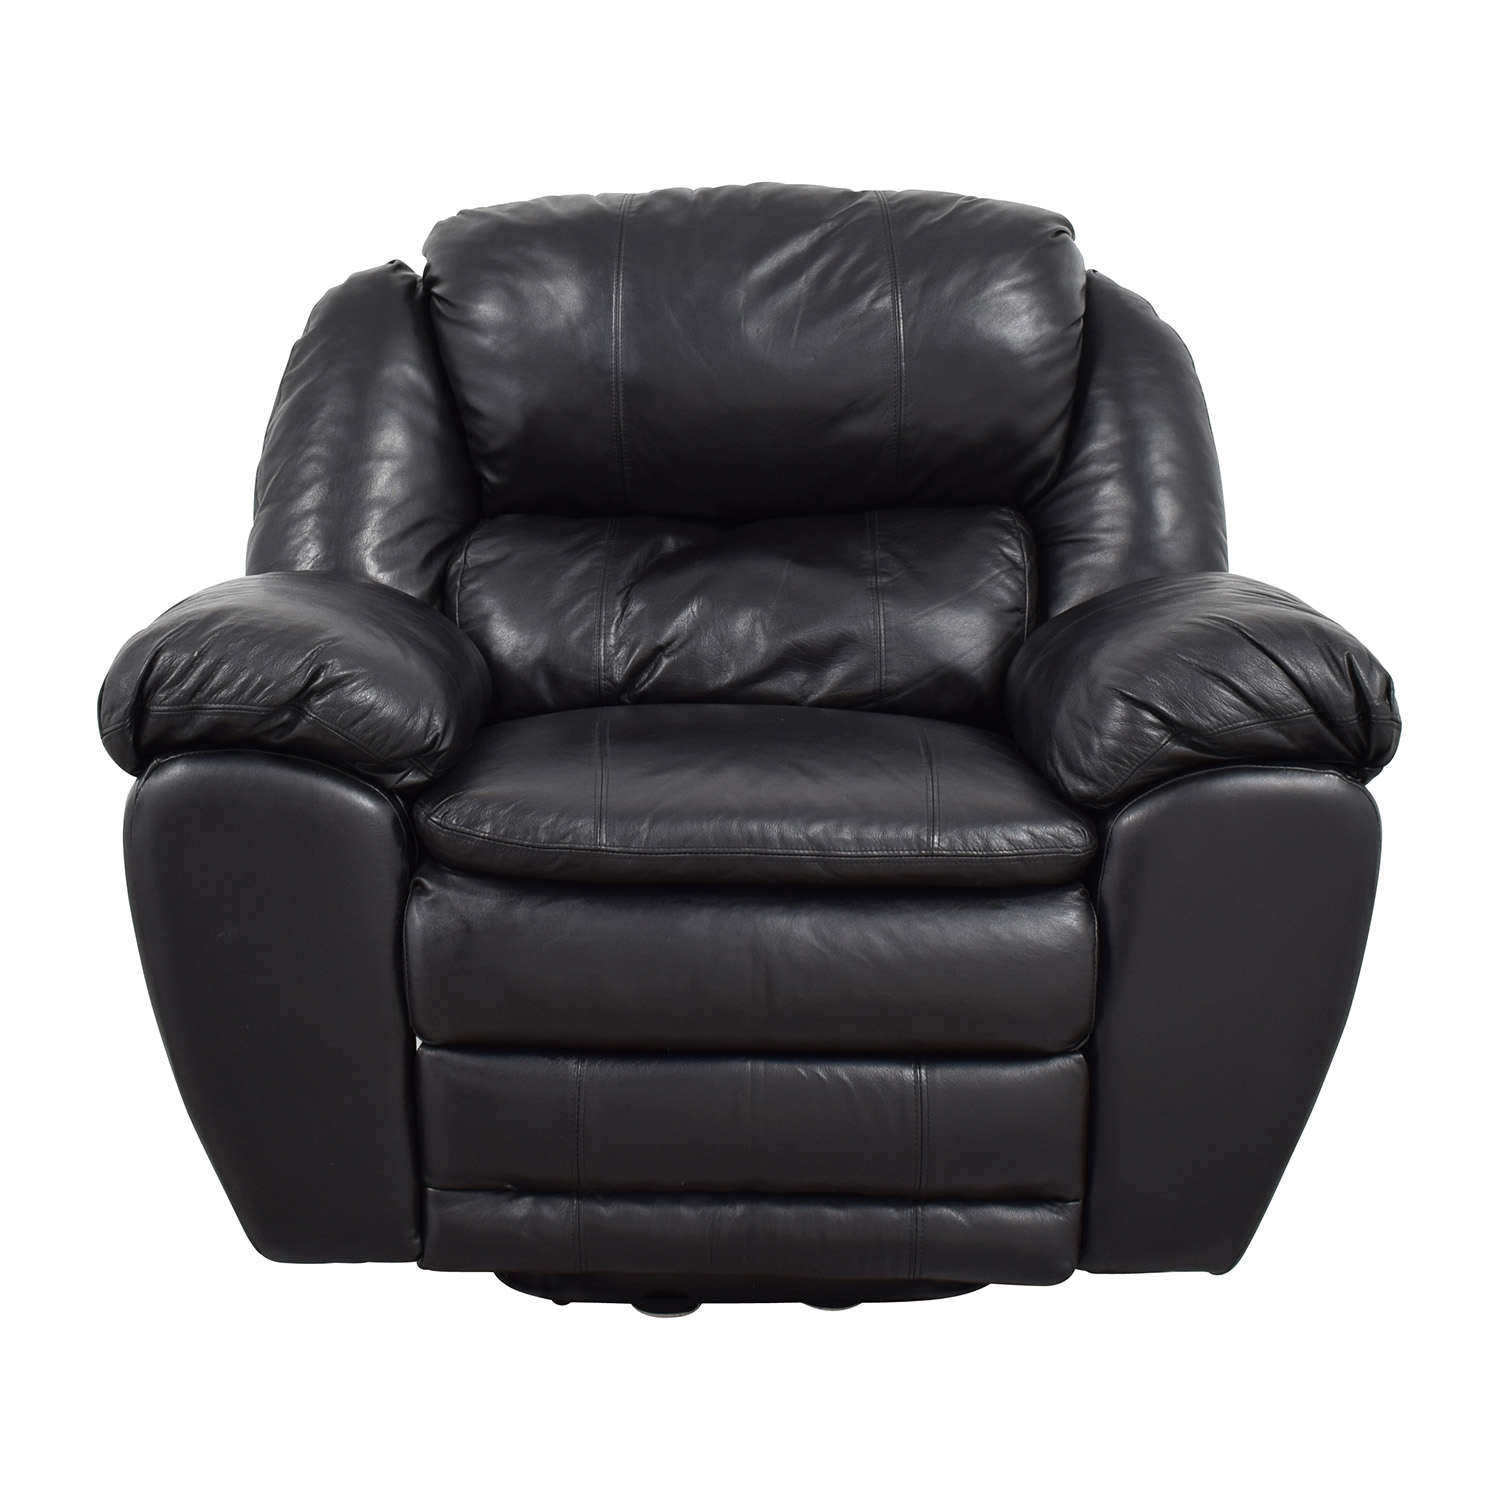 87 Off Berkline Berkline Black Leather Rocking Recliner